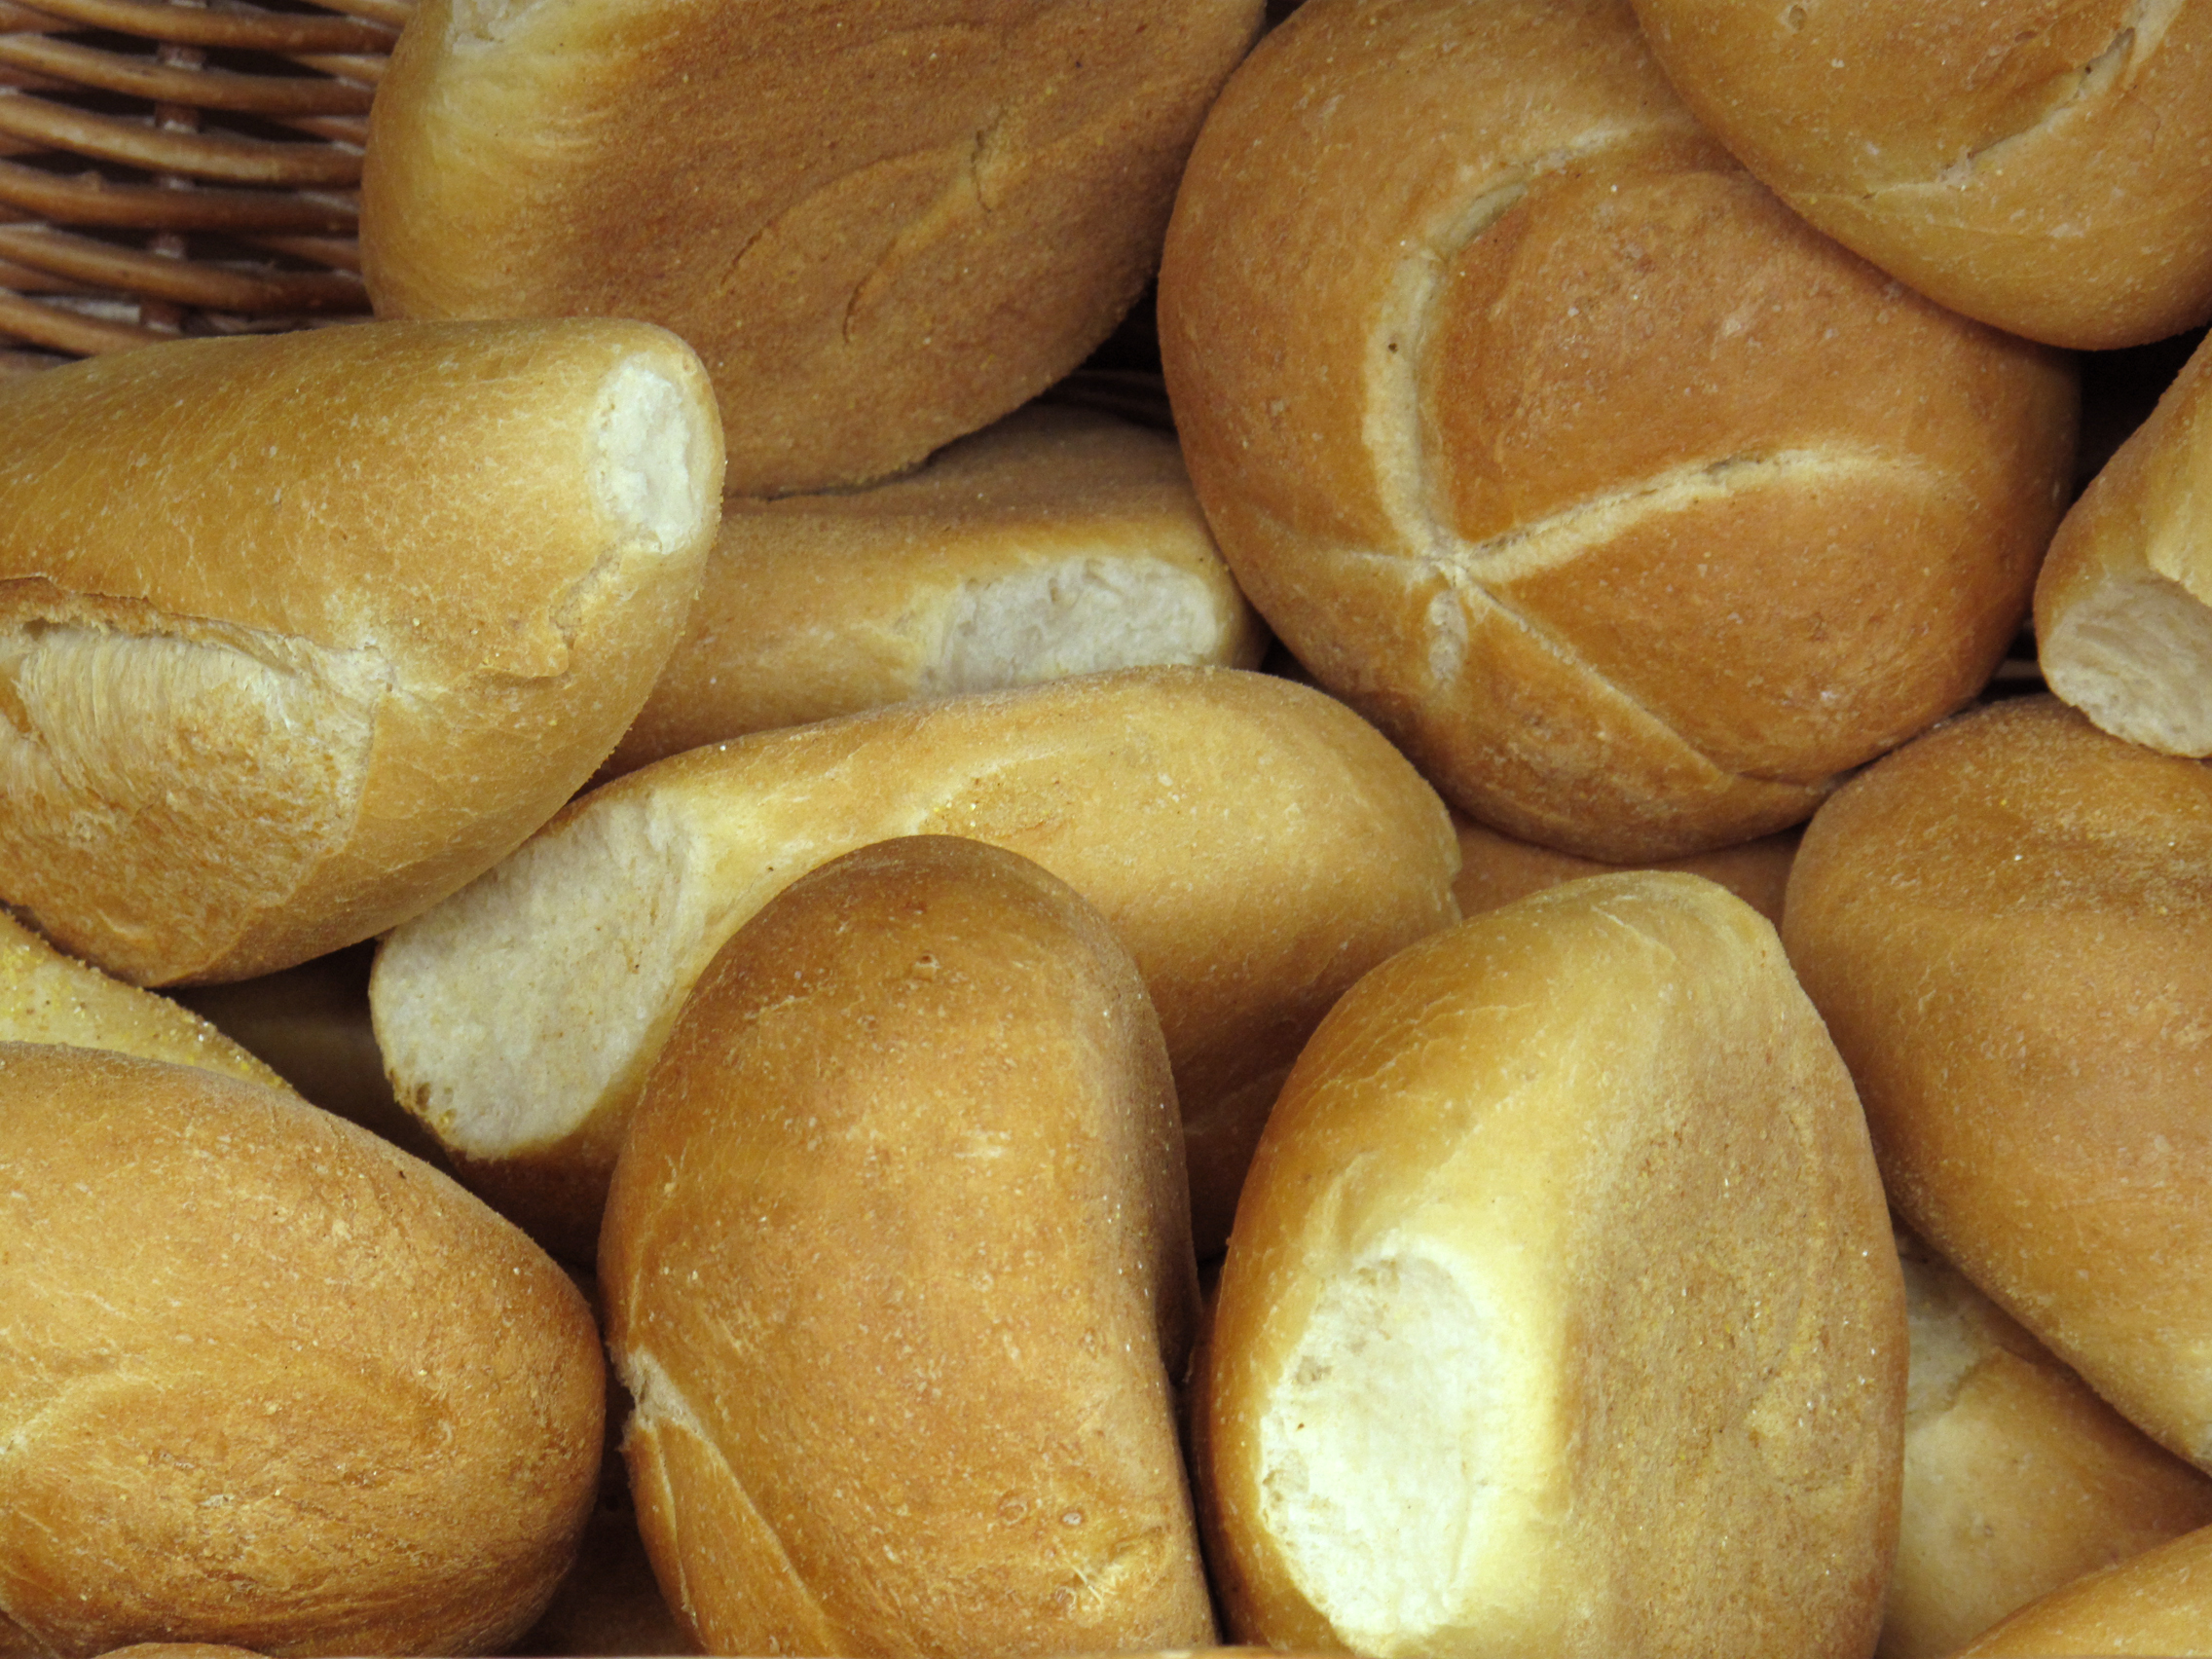 Free Photography Stock Bread Rolls Free Stock Photo Image Picture Fresh Bread Rolls